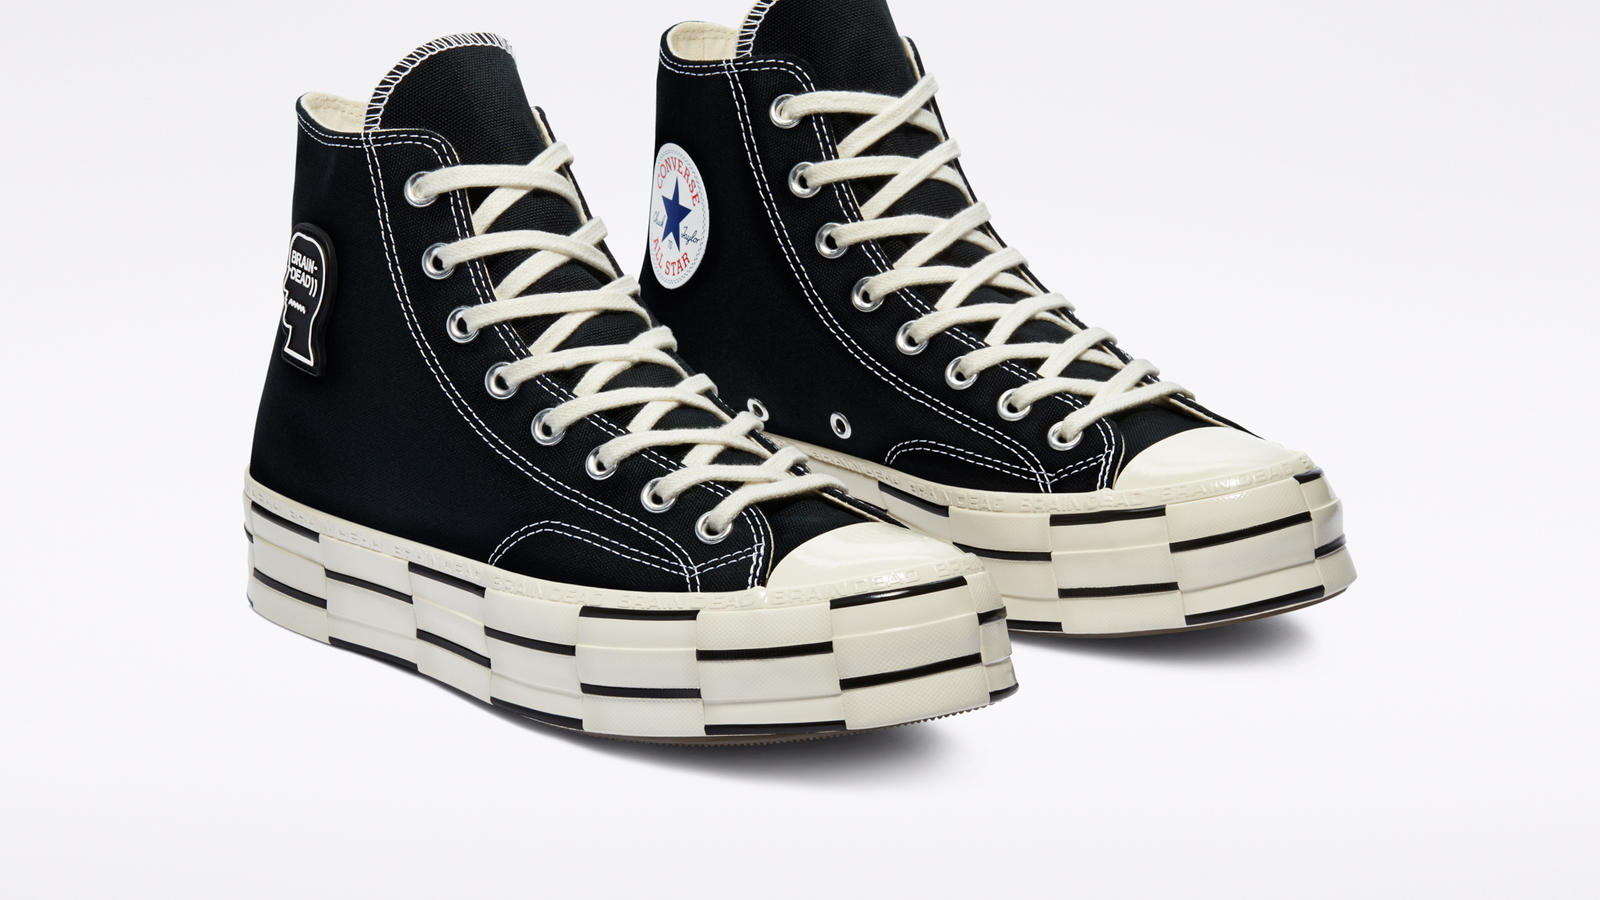 Converse Brain Dead Collaboration HO20 5